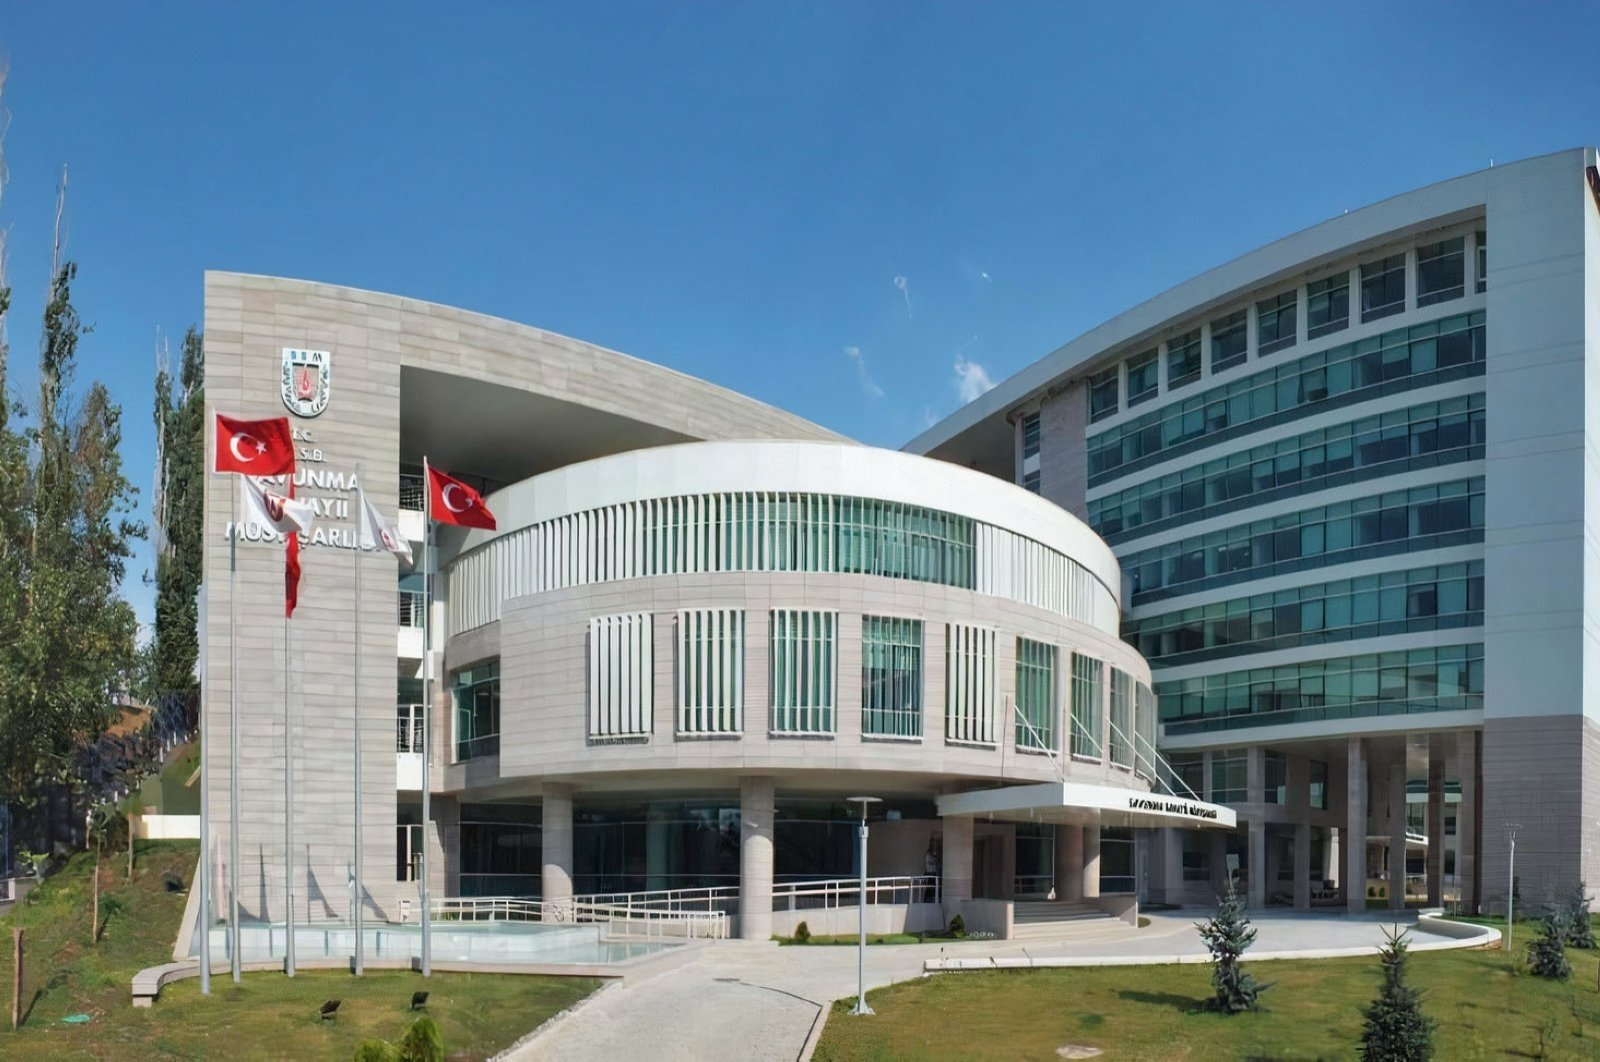 Presidency of Defense Industries (SSB) based in Ankara had raised its profile with projects based on local resources instead of dependence on foreign companies (COURTESY OF SSB)